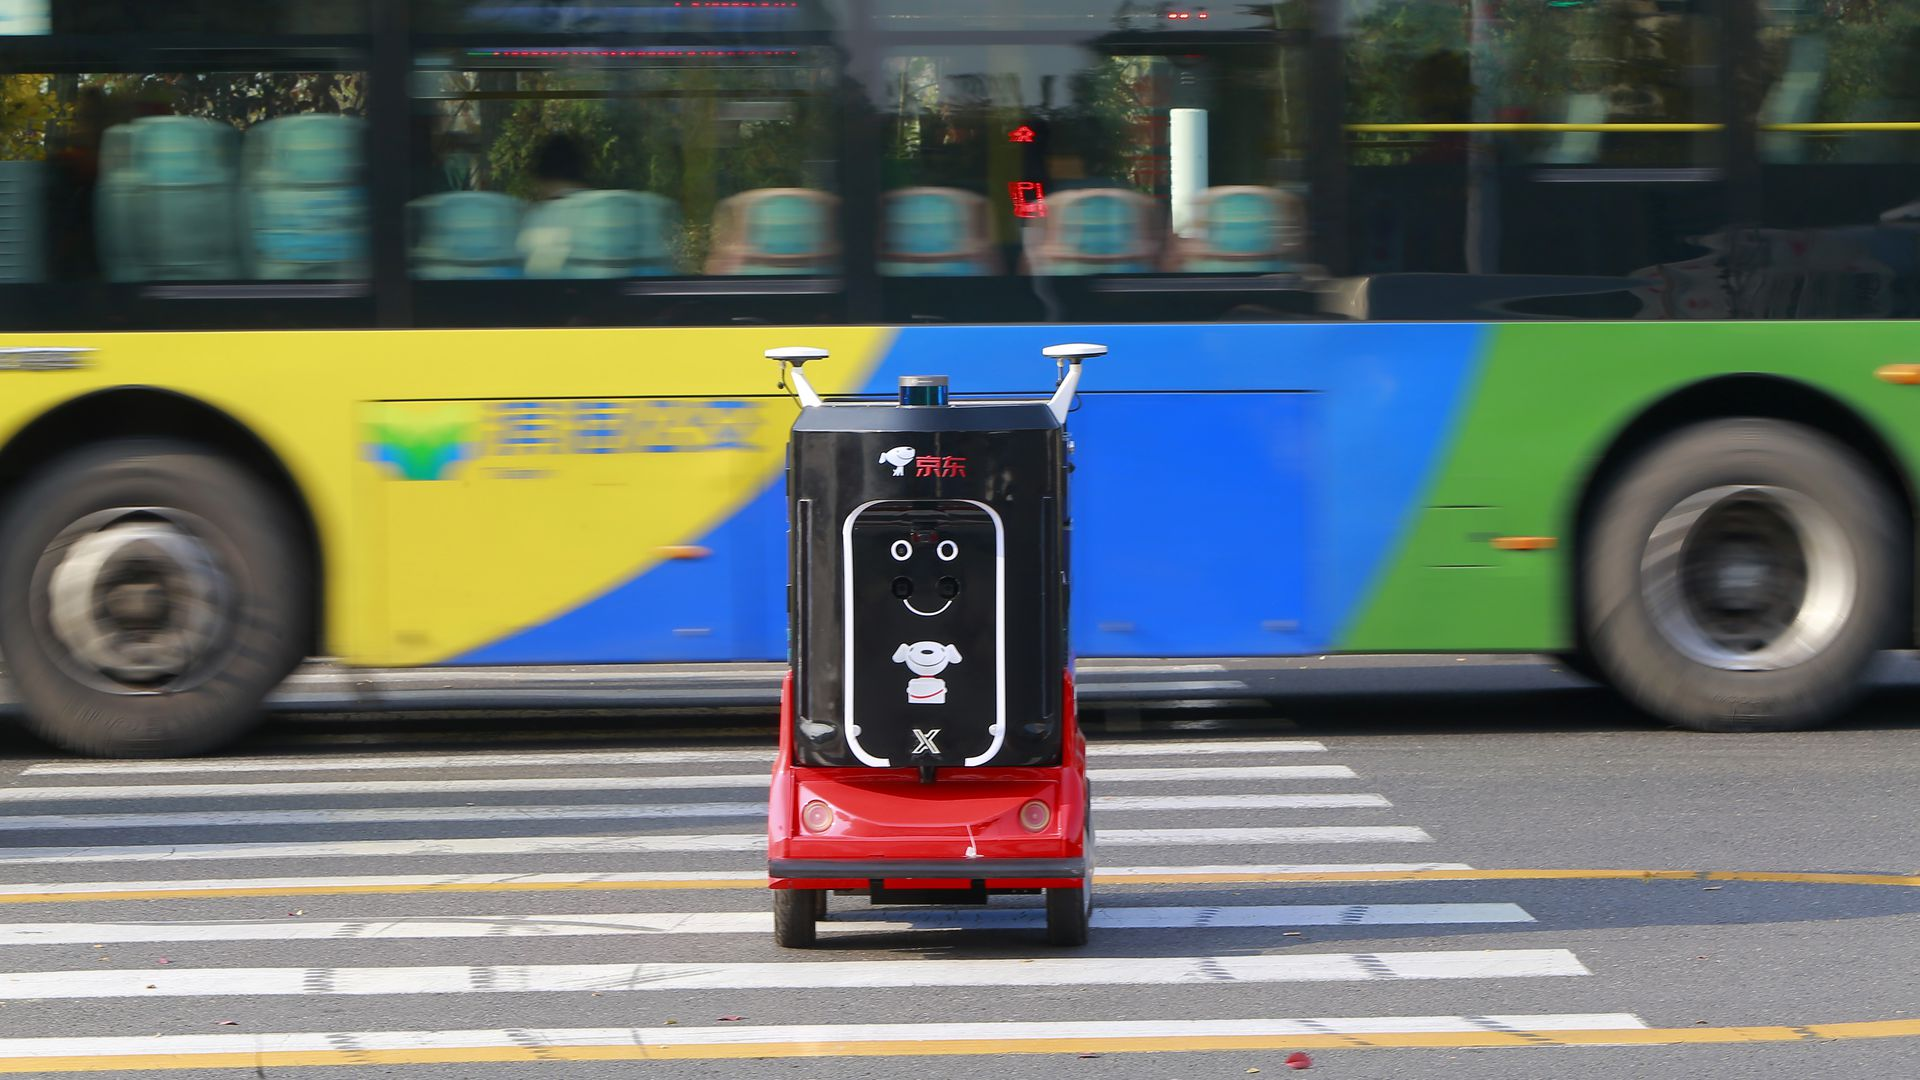 A red and black robot with a smiley face rolls across the street